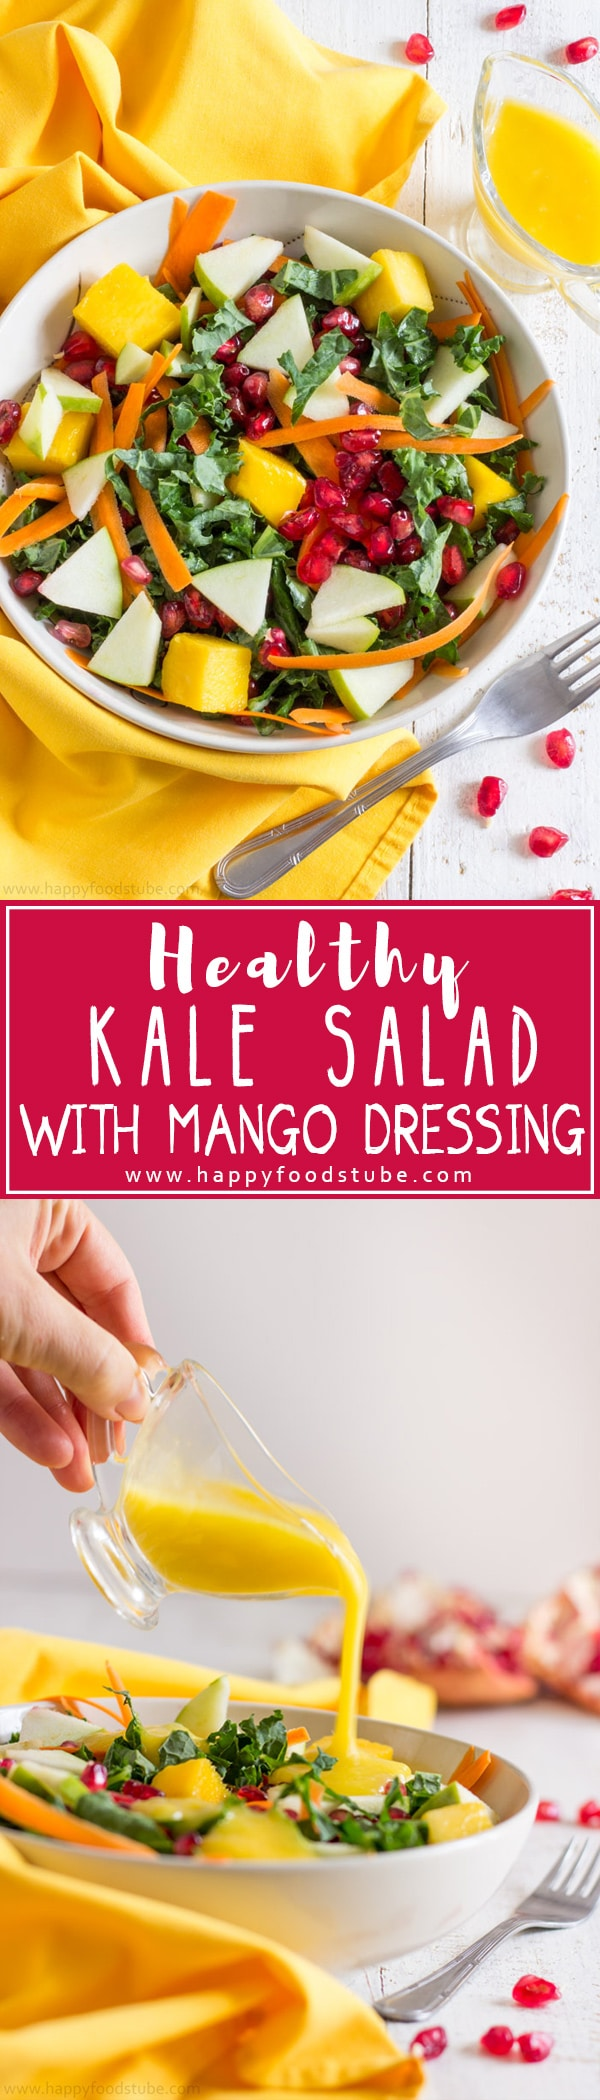 Super Healthy Kale Salad with Mango Dressing! Easy vegetarian recipe. It's light, ready in less than 15 minutes, nutritious & easy to make! | happyfoodstube.com